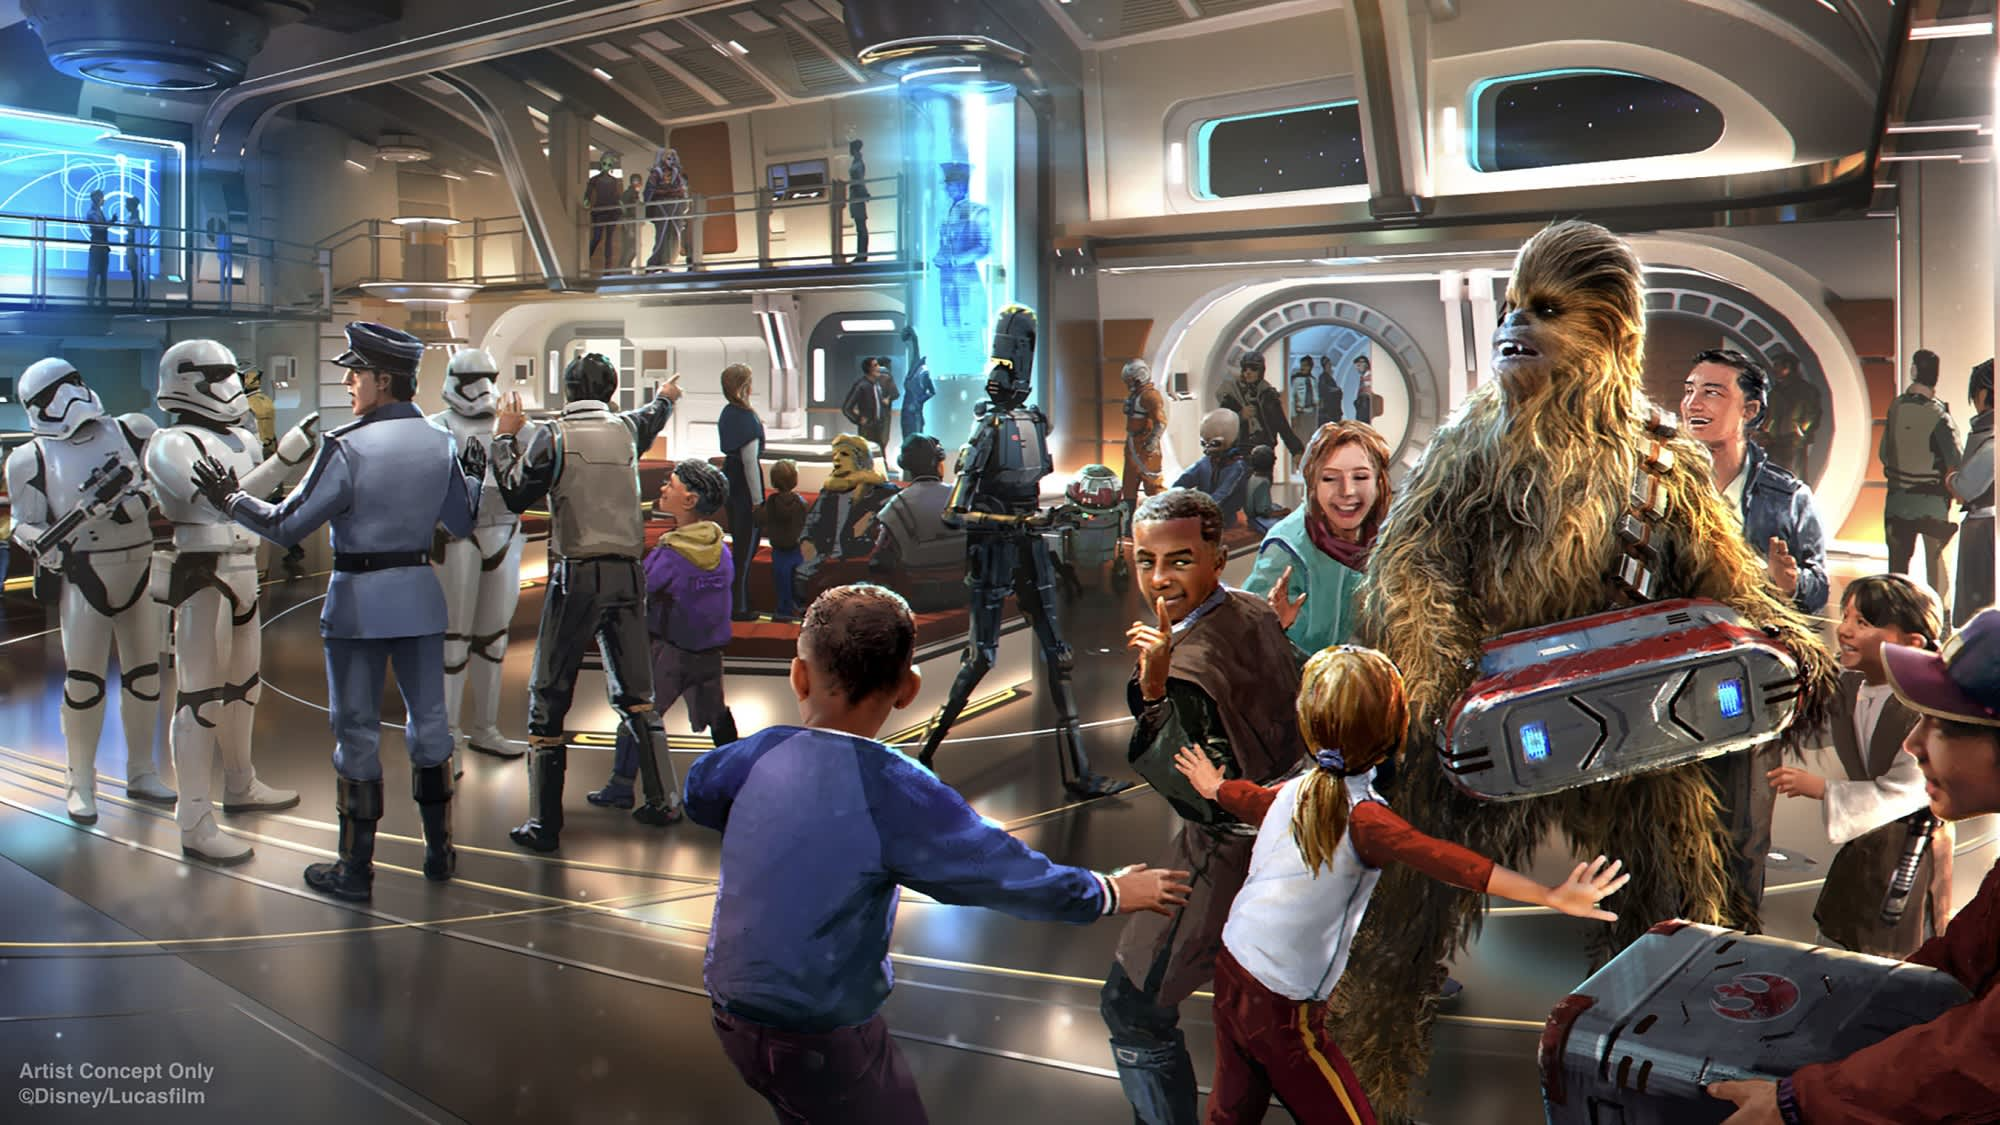 See what Disney's new 'Star Wars' Galactic Starcruiser hotel will look like